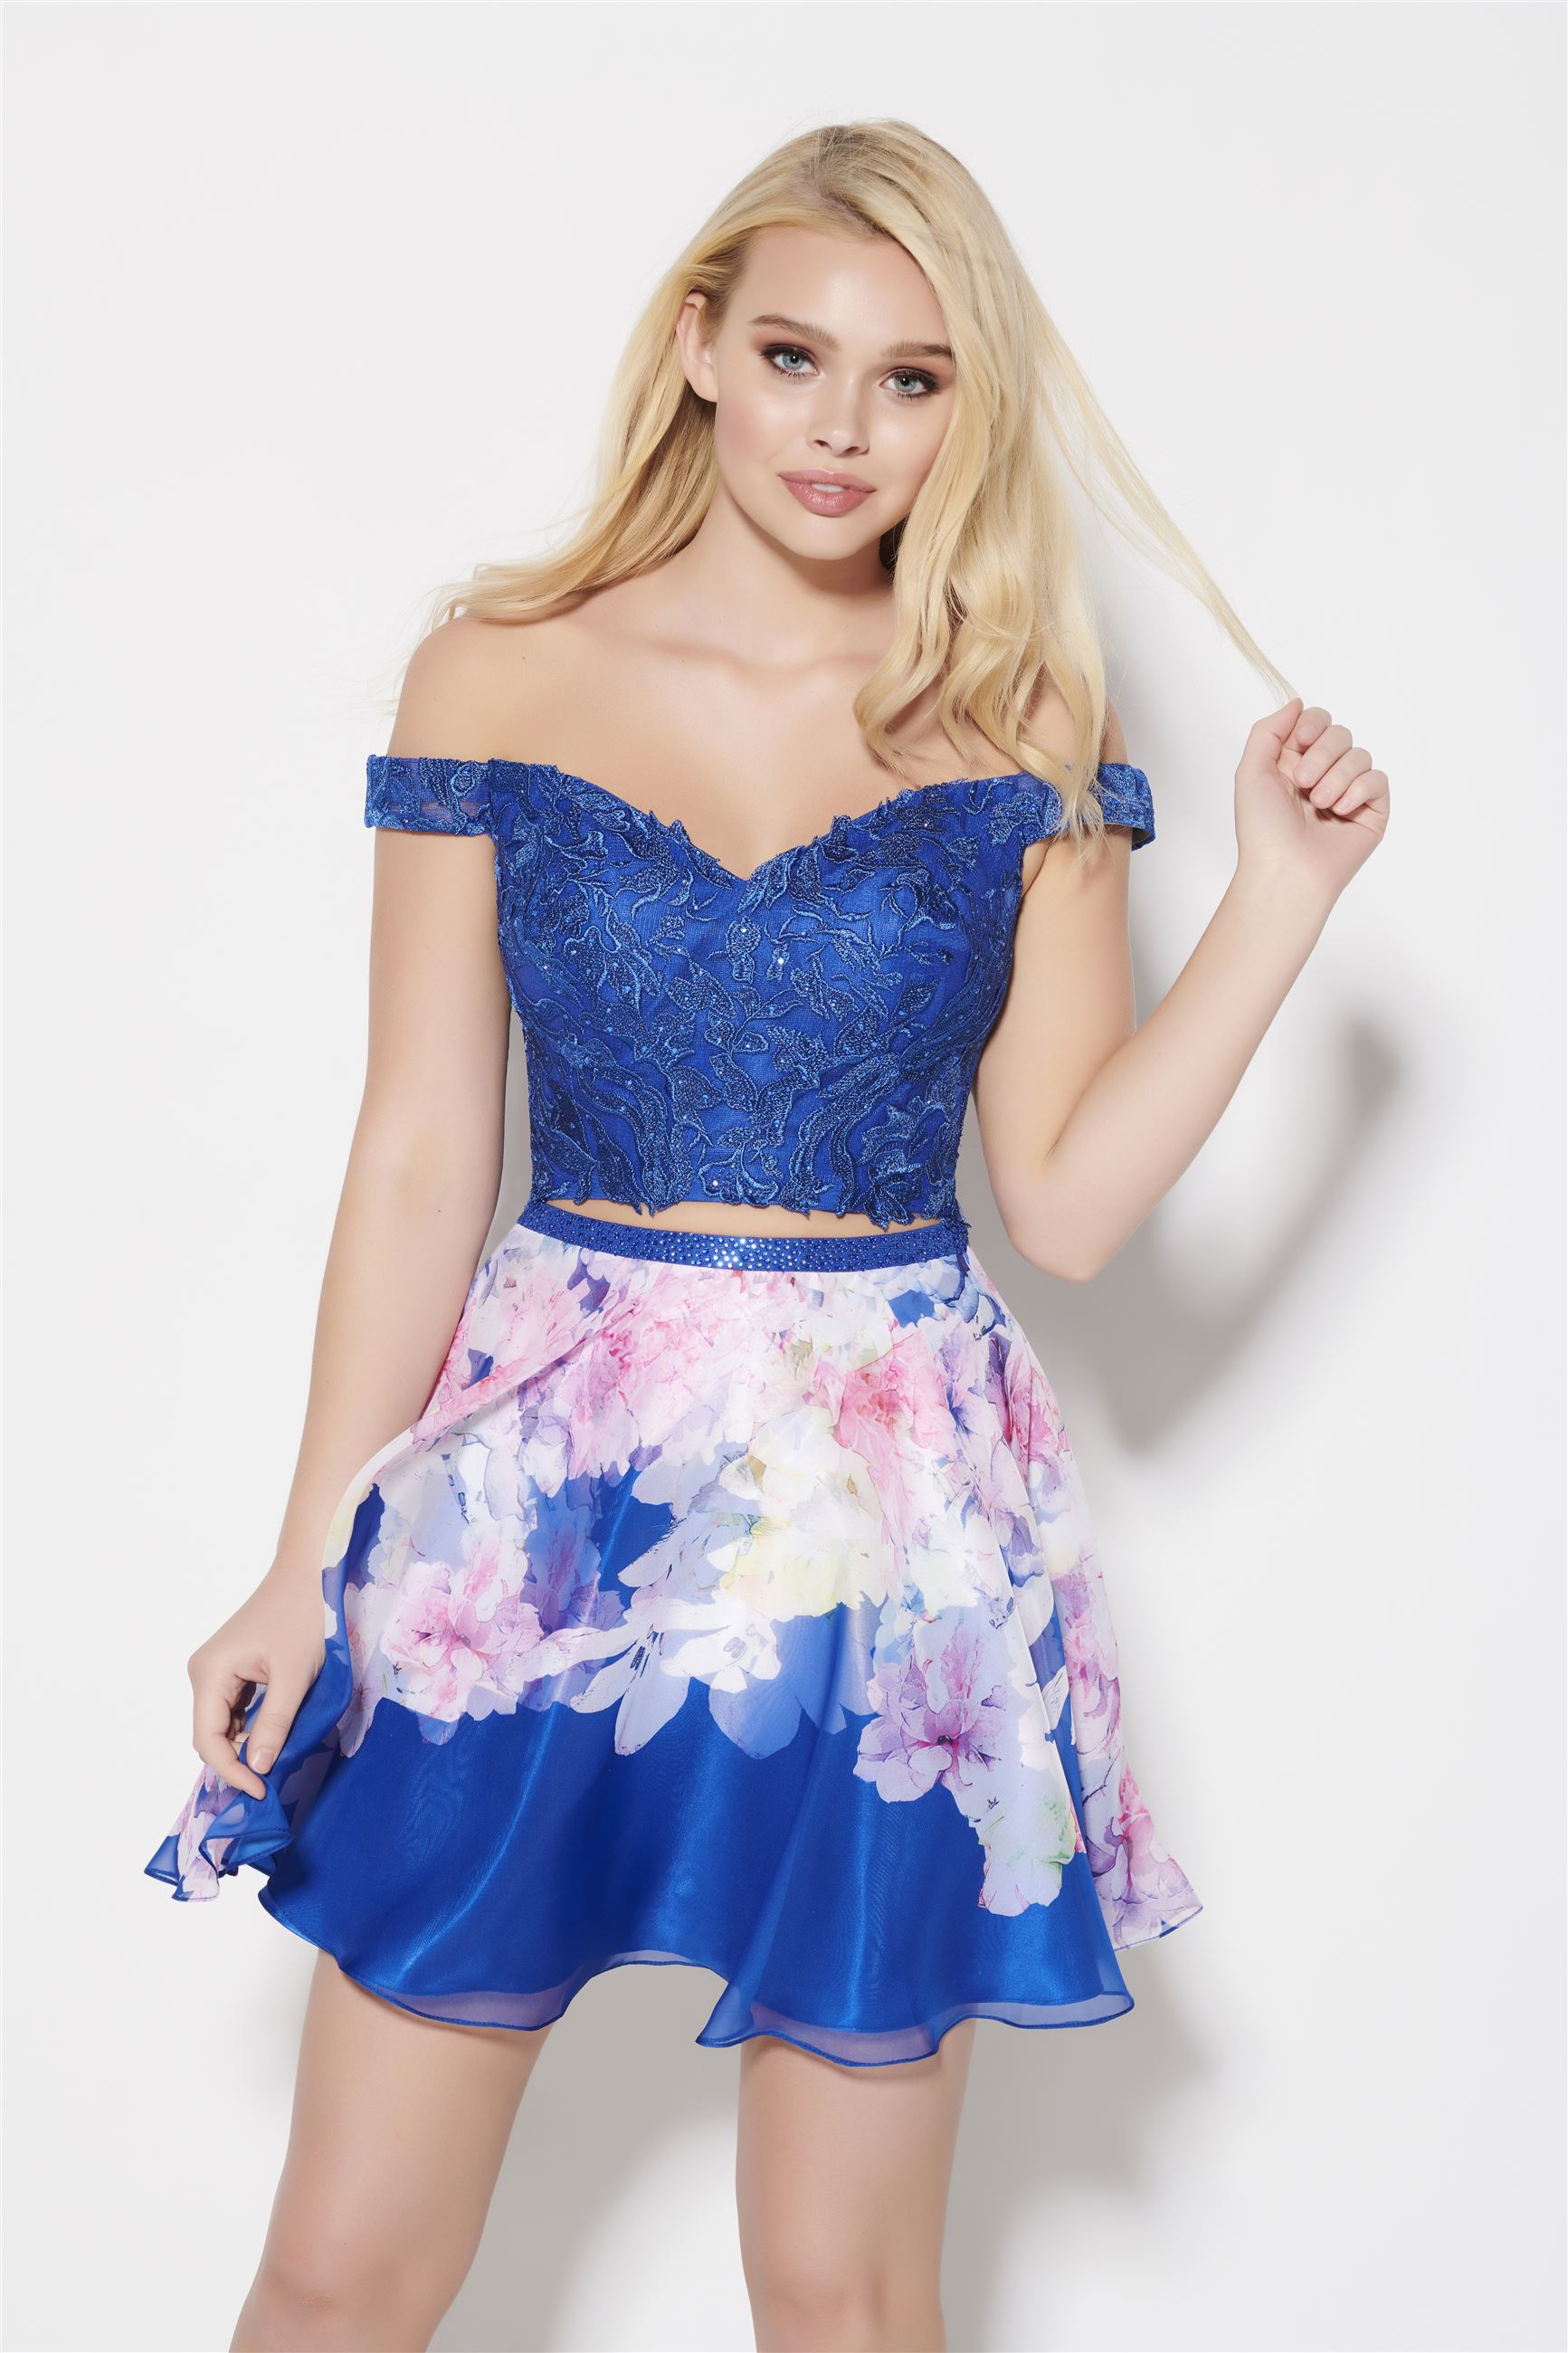 Blonde girl in blue two piece homecoming dress